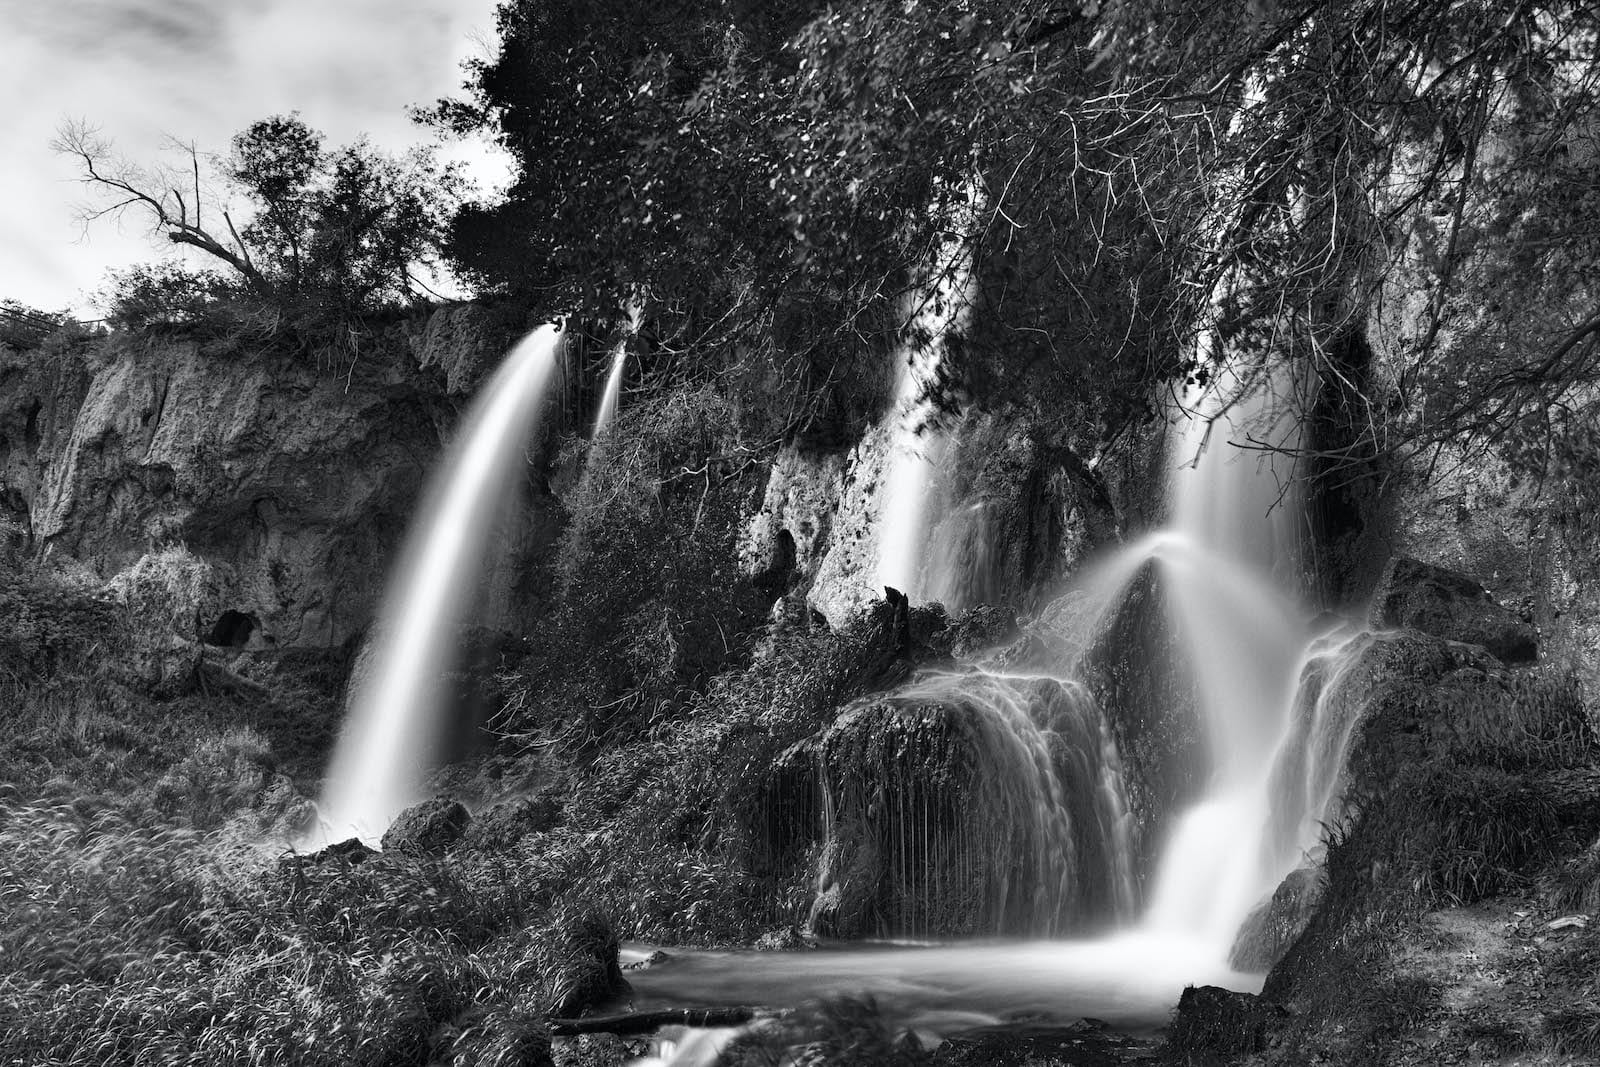 Black and white image of Rifle Falls in Rifle, Colorado